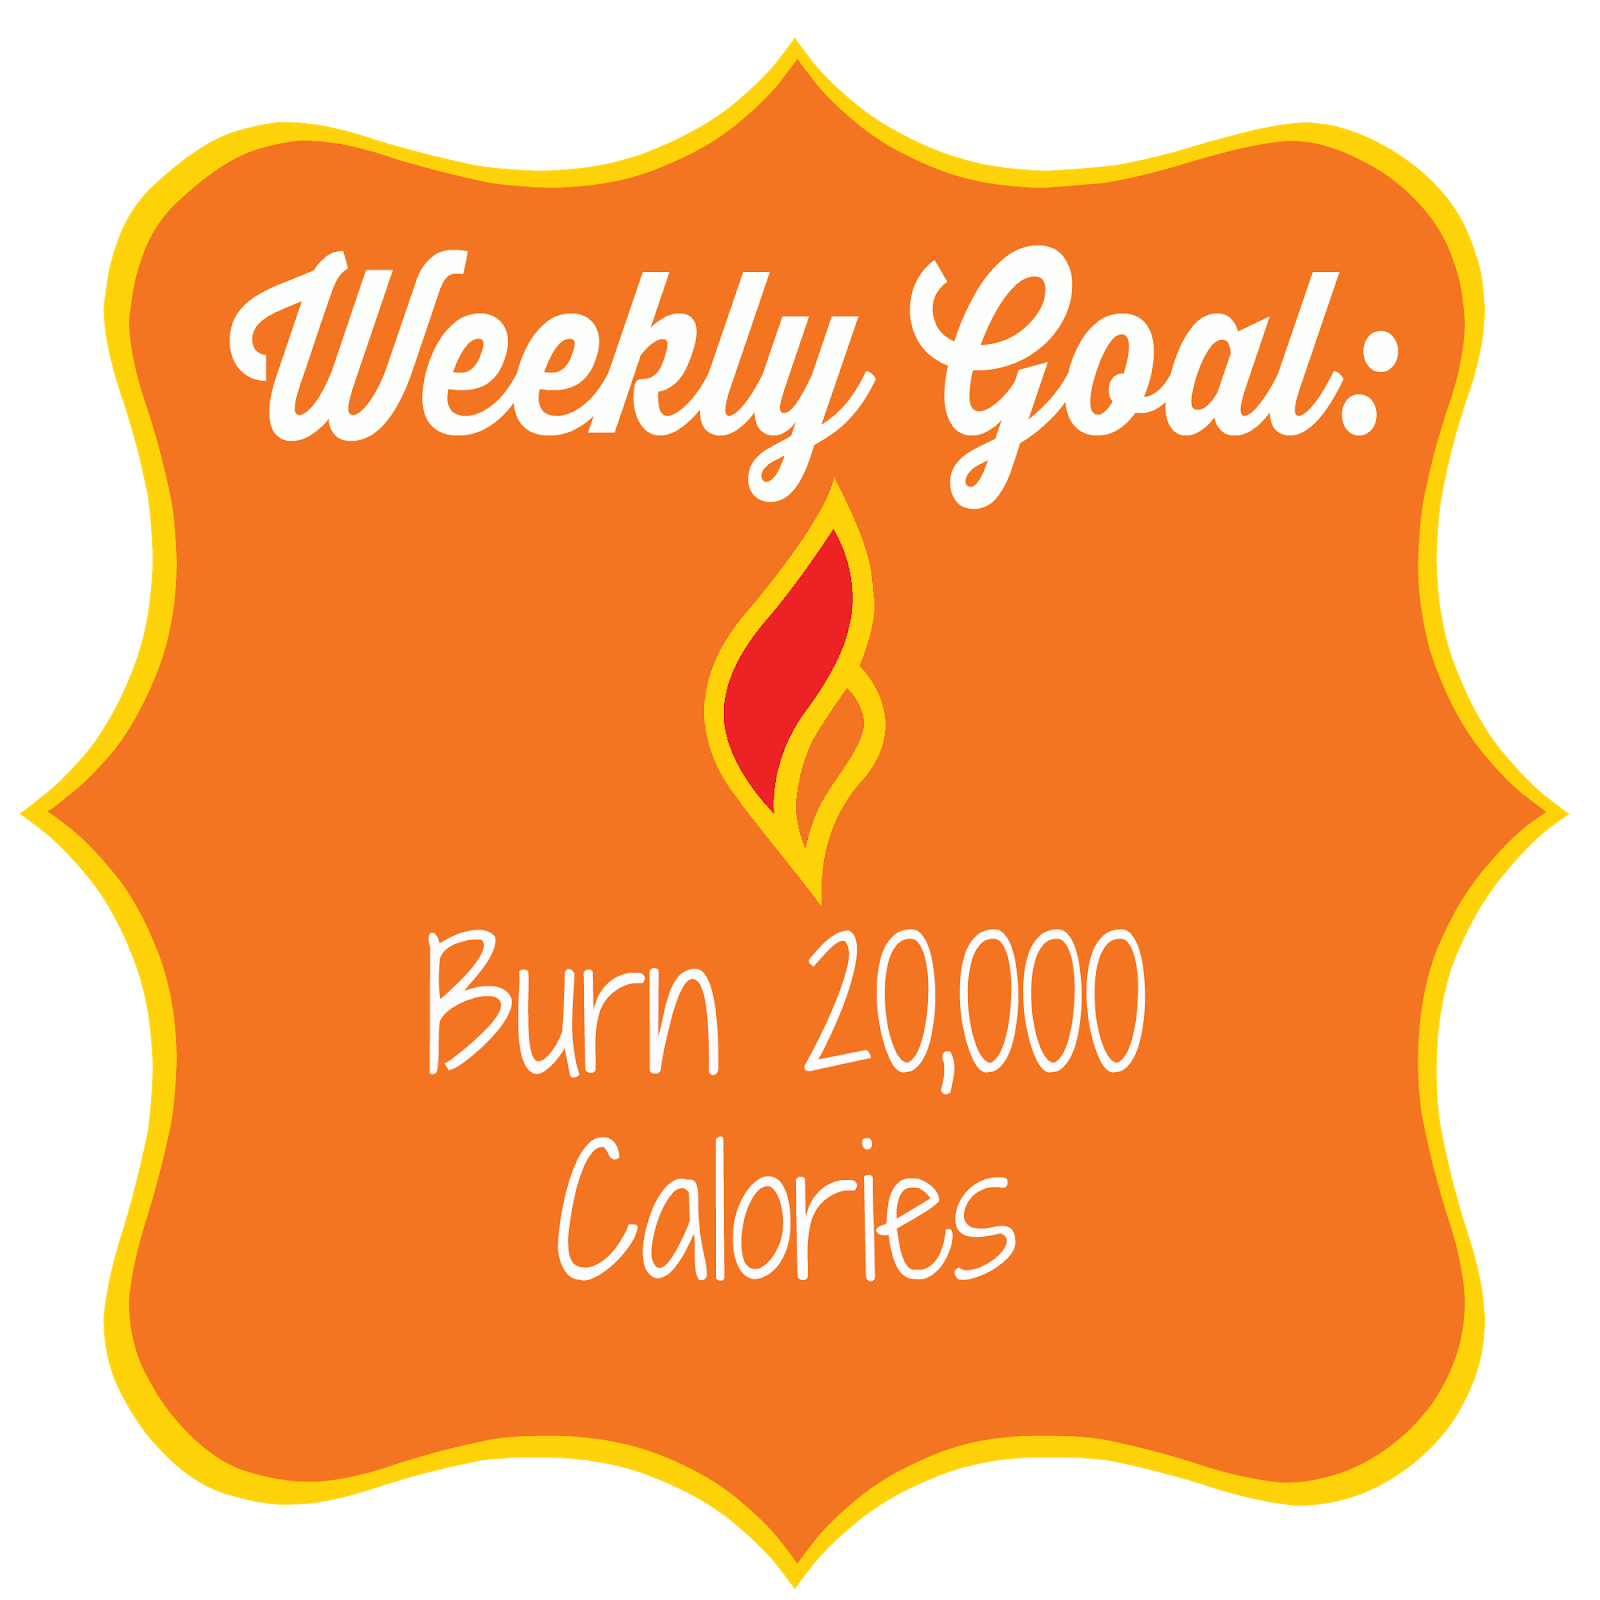 I have been burning fewer calories lately because I have been too busy to  get to the gym. This week my goal is to burn 20,000 ...